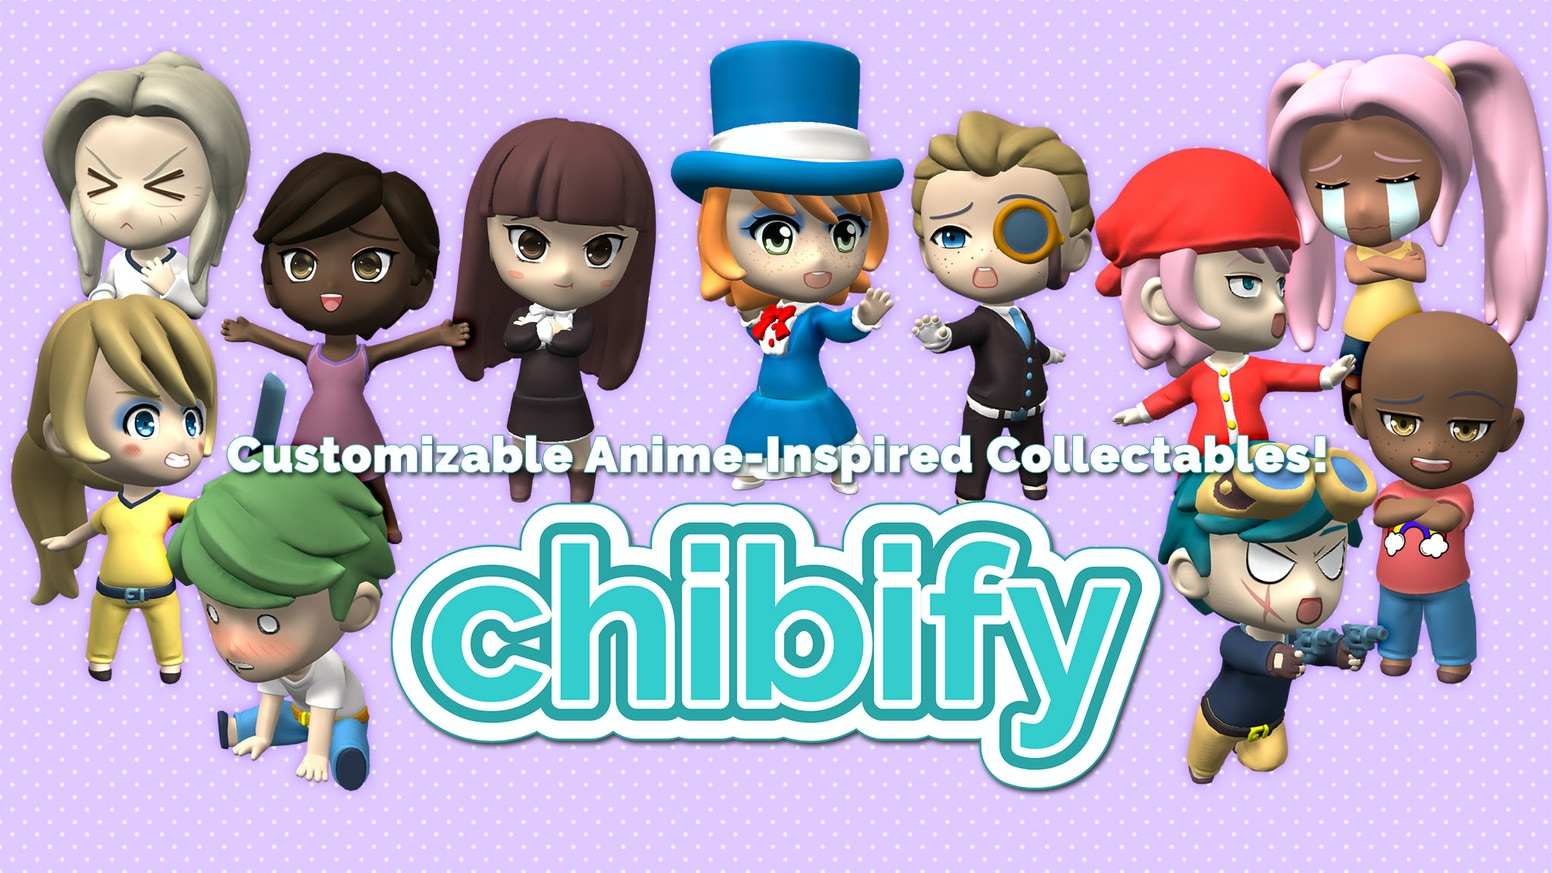 Chibify: Customized Anime Collectibles by Hero Forge